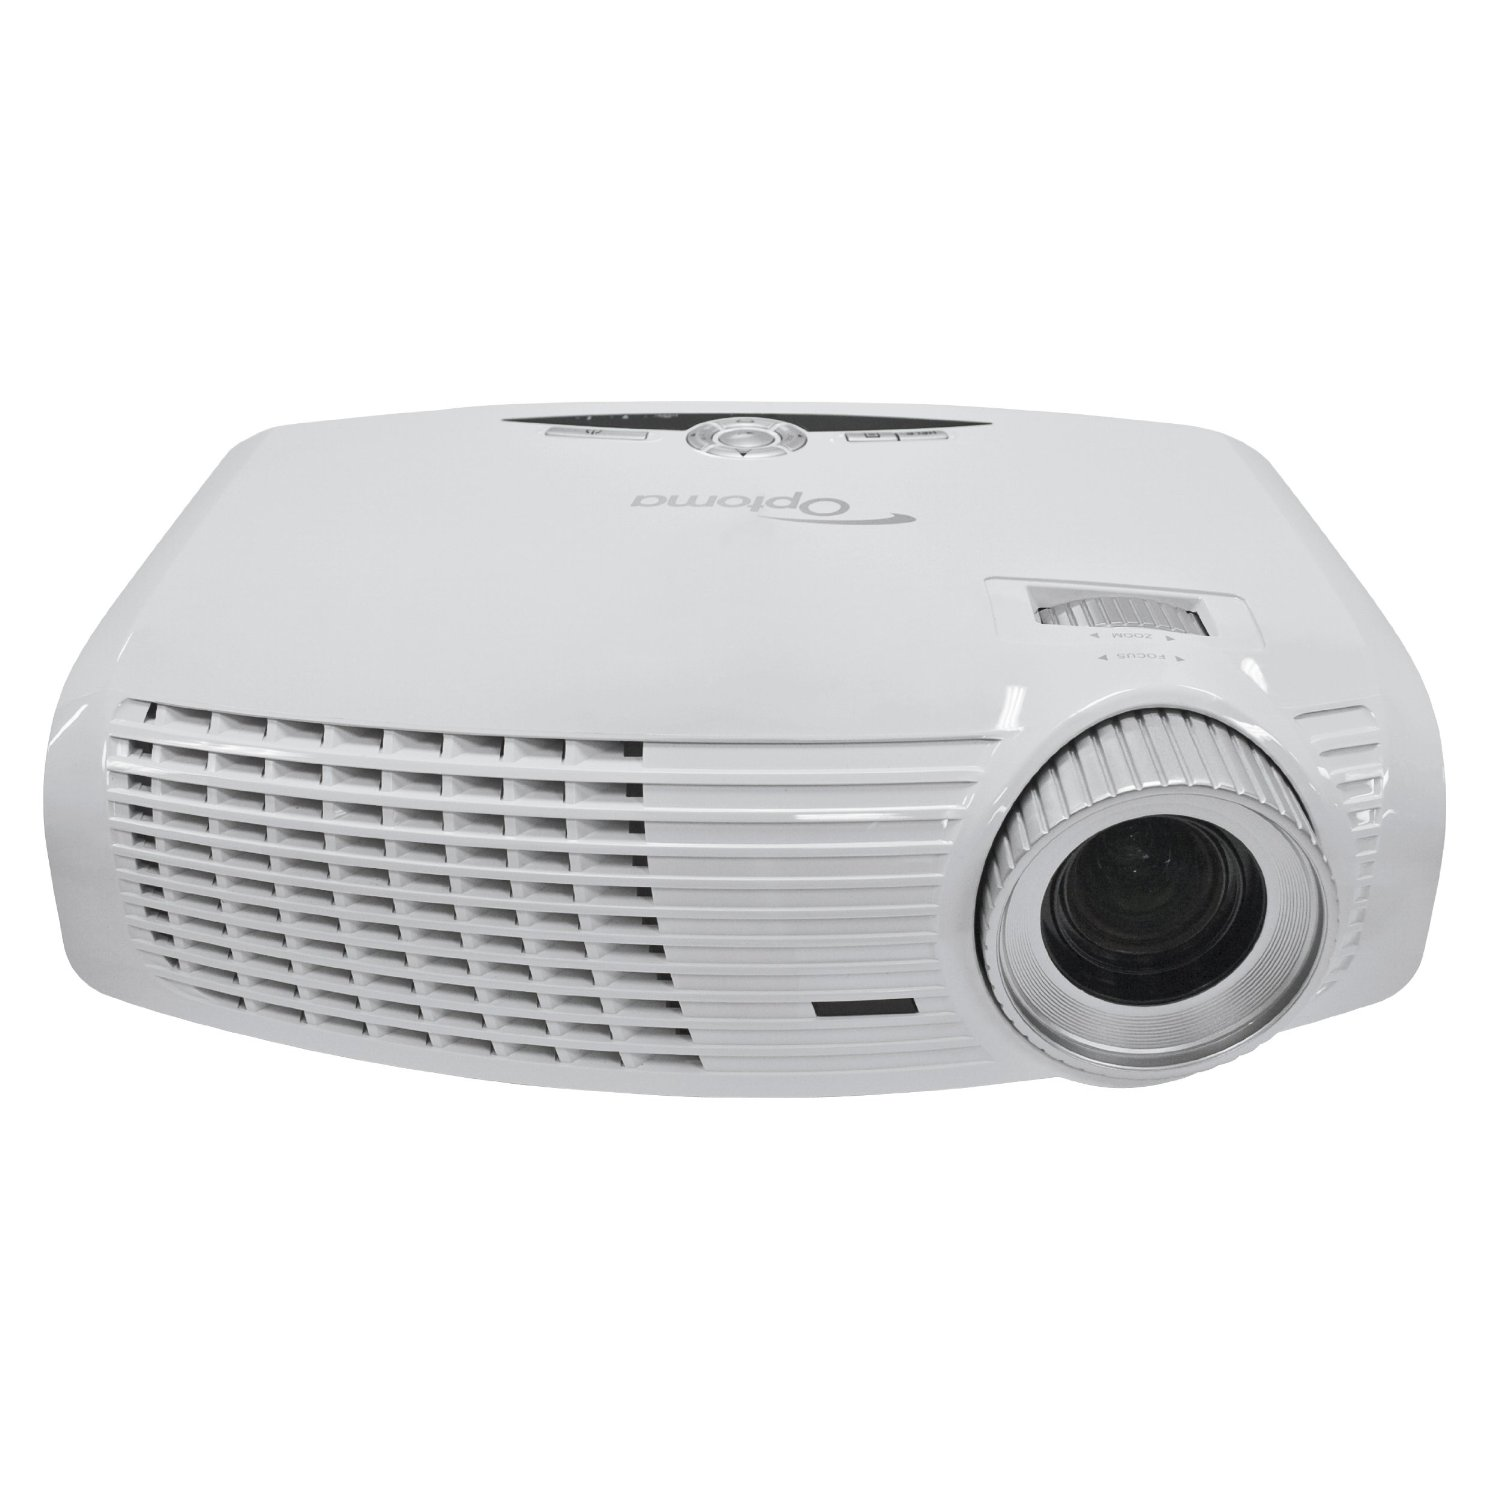 Mini wall best hd projector 1080p reviews optoma hd20 for Hd projector